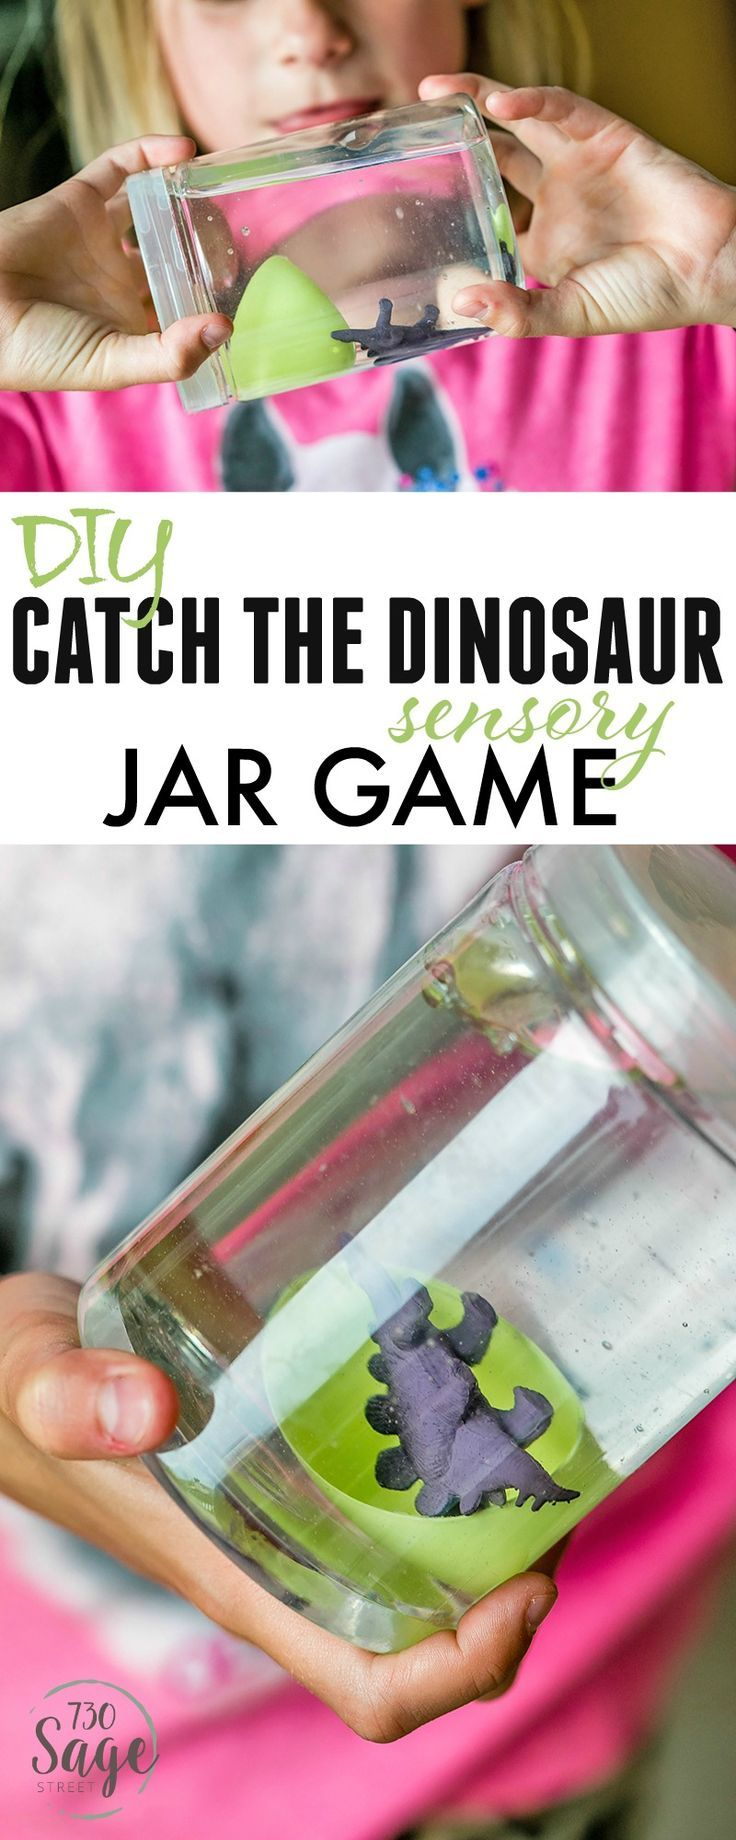 Dinosaur Preschool Crafts help engage imaginations and keep kids busy. This DIY Catch The Dinosaur Sensory Jar Game is easy to make and is super fun! #ad https://www.730sagestreet.com/dinosaur-preschool-crafts-diy-catch-the-dinosaur-sensory-bottle-game/